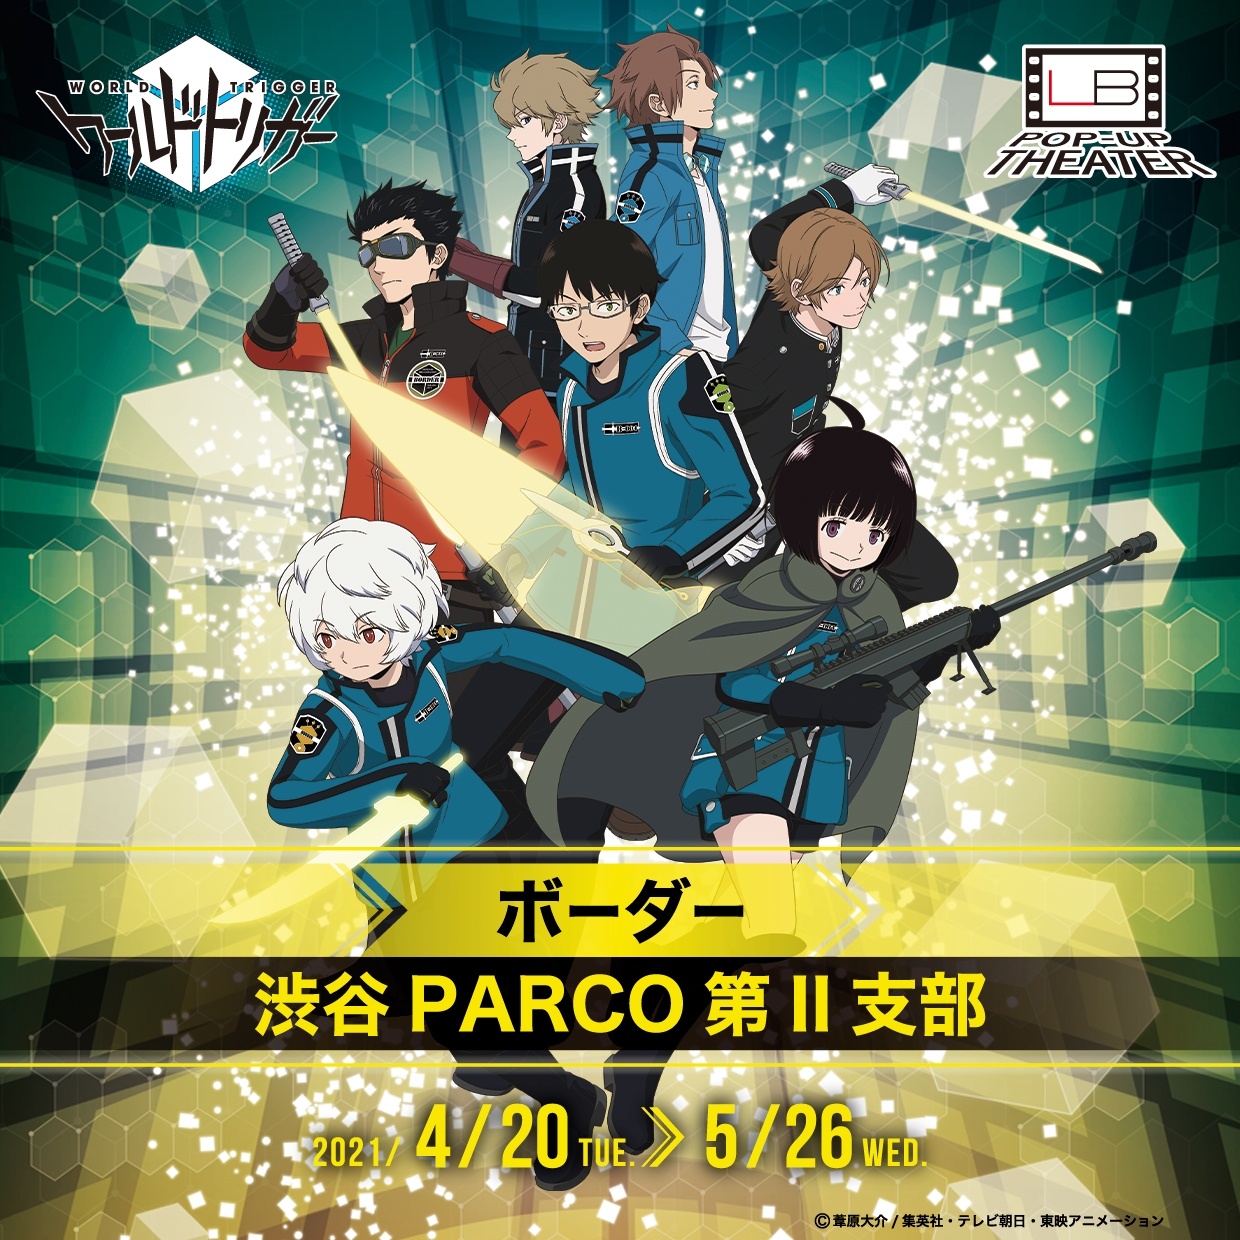 "LB POP-UP THEATER ""world trigger"" SHOP in Shibuya PARCO"